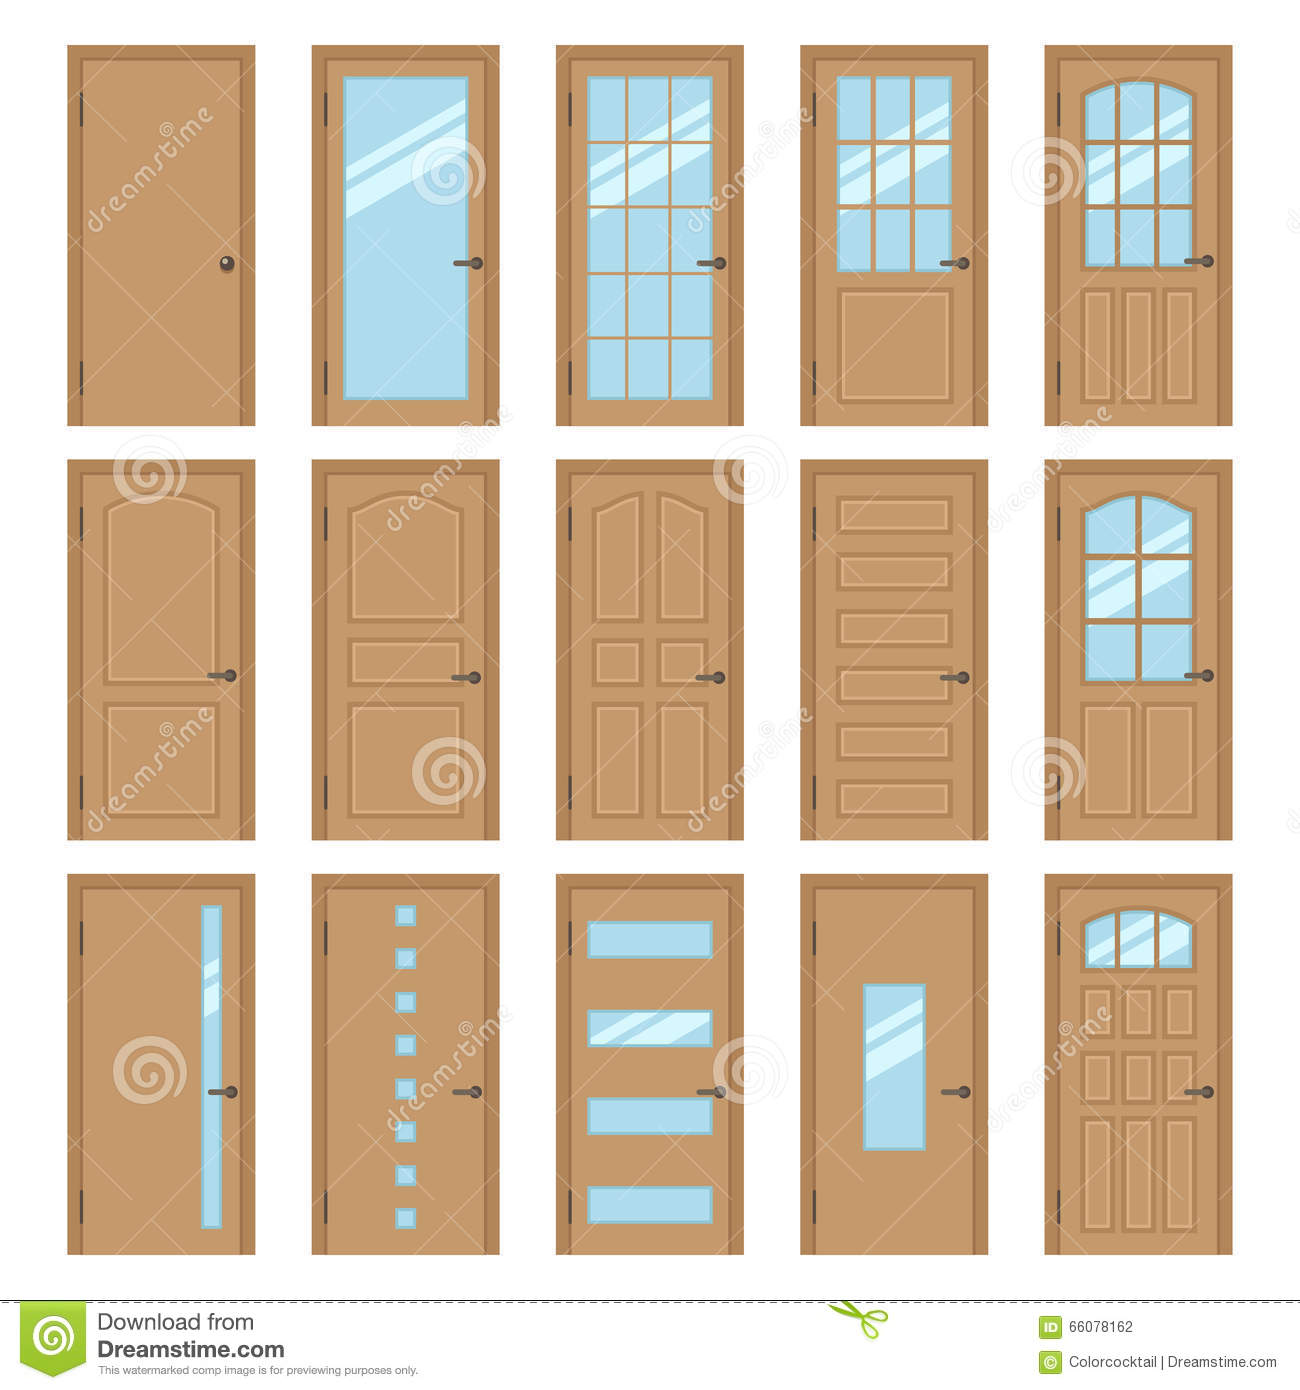 Portes int rieures illustration de vecteur image 66078162 for Type de porte